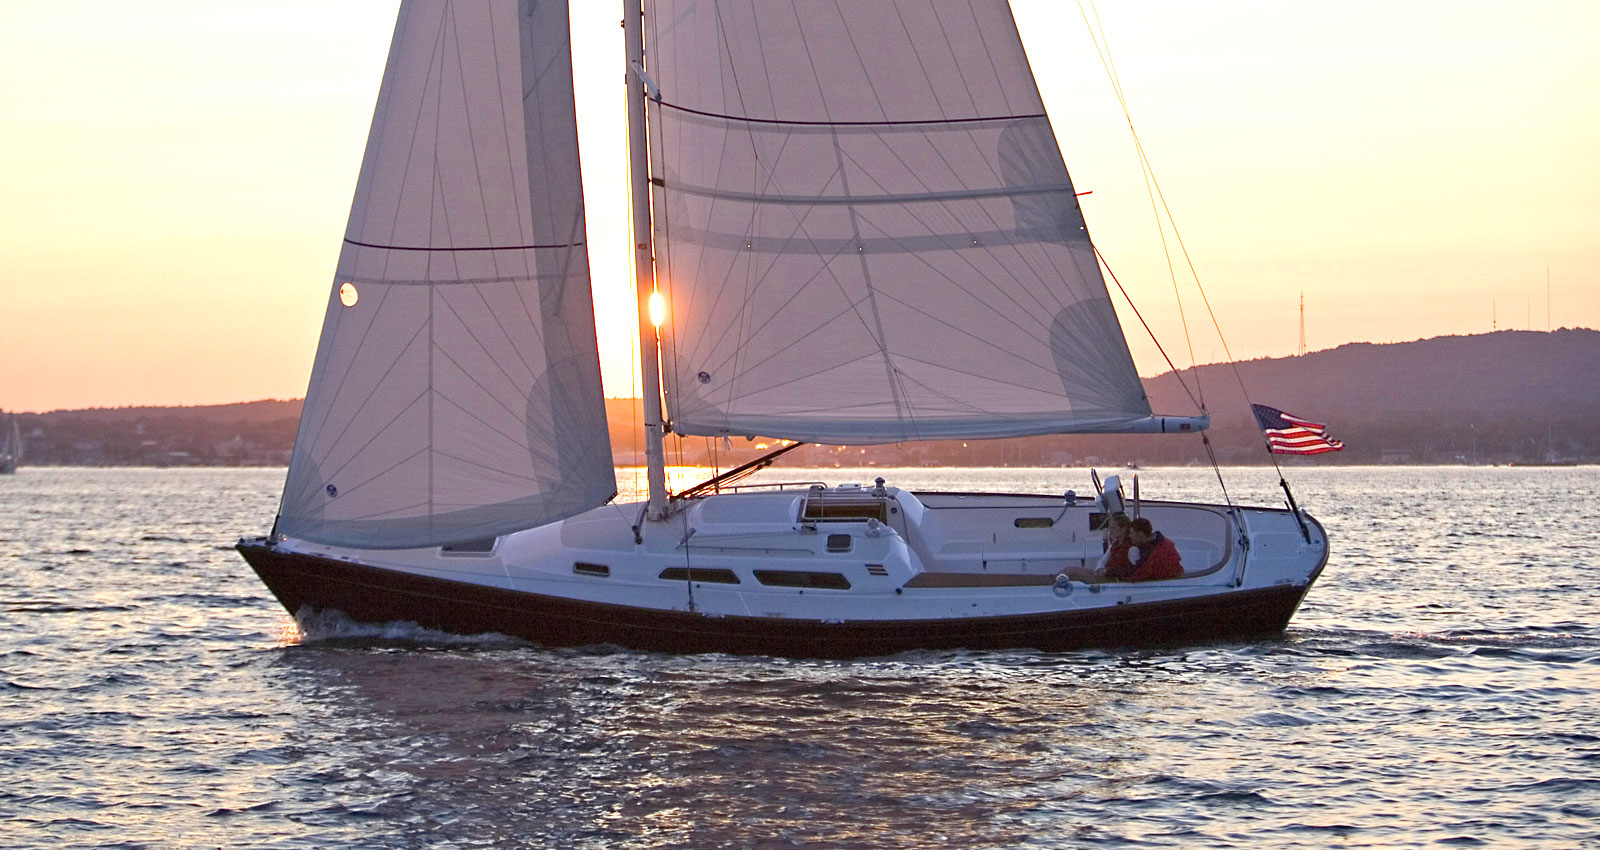 Sailing Yacht Specifications | Detailed specifications for ... on